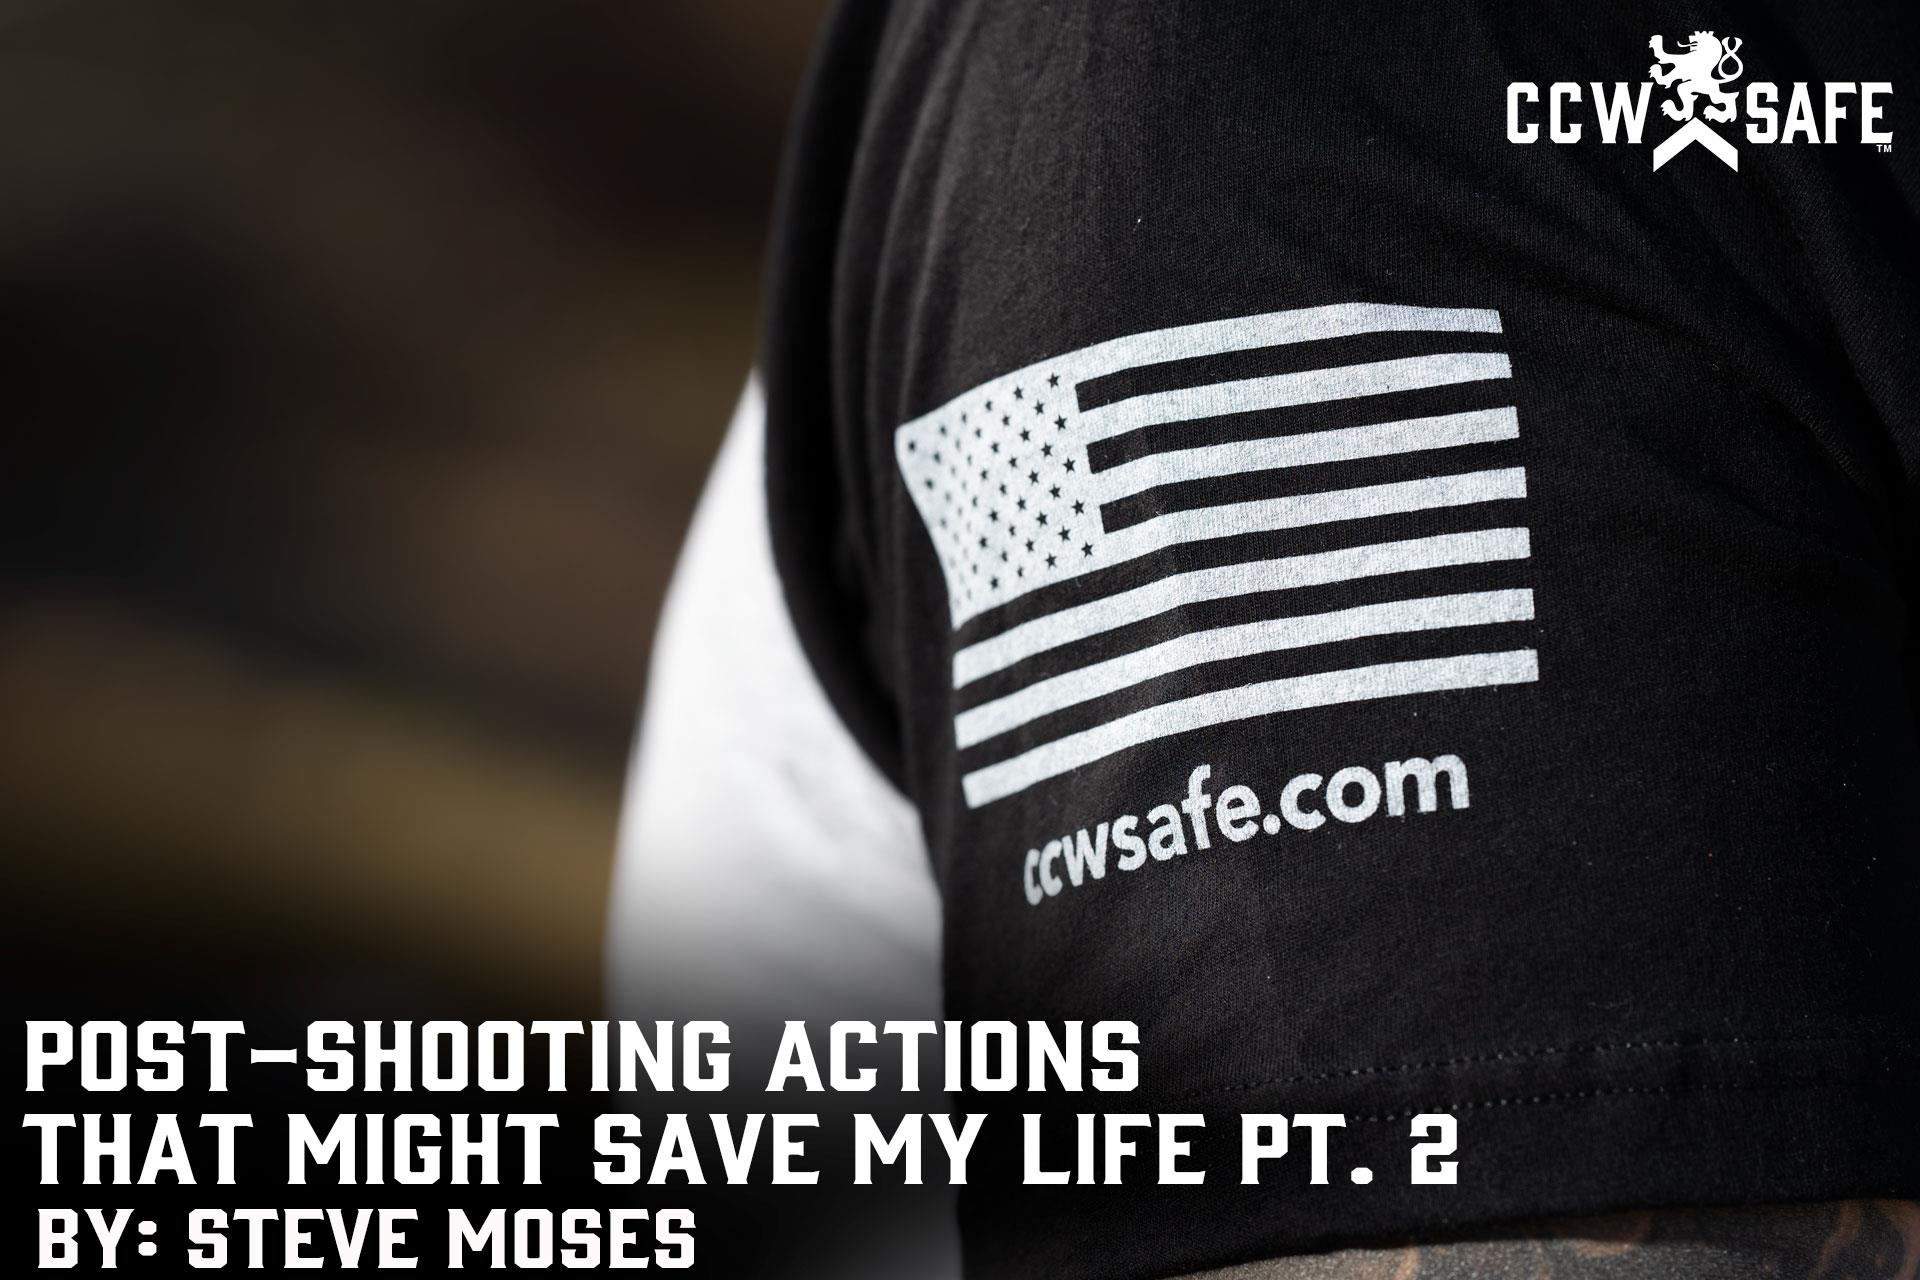 POST-SHOOTING ACTIONS THAT MIGHT SAVE MY LIFE PT.2